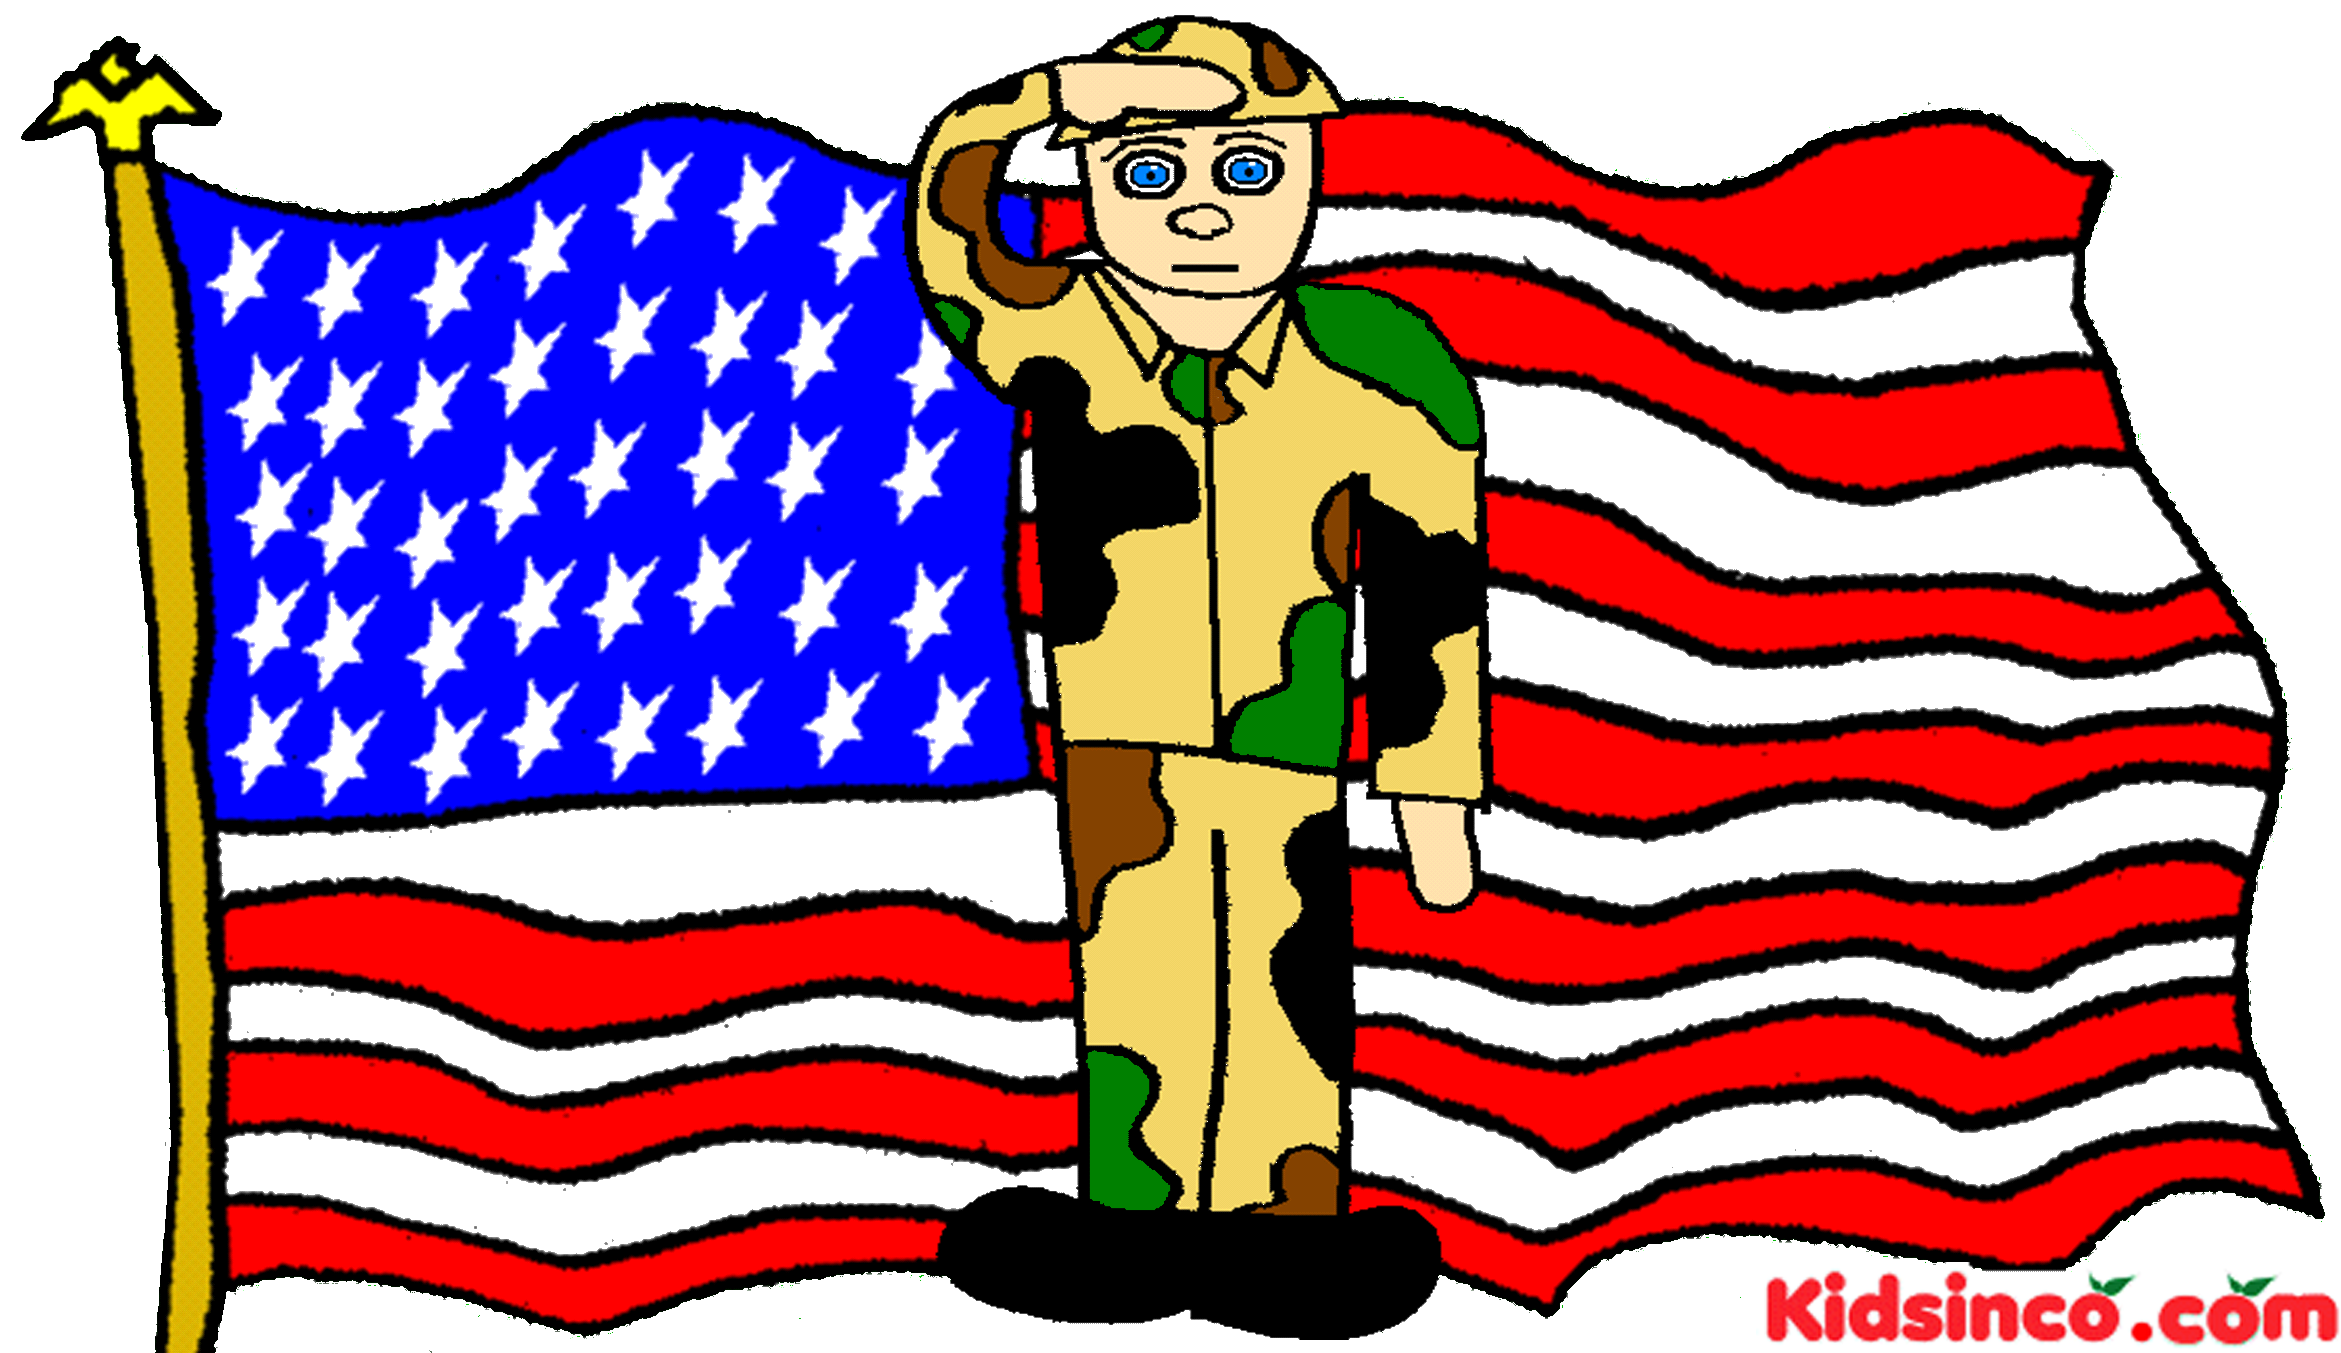 Veterans Day 2014 Clipart Free Veterans Day 2014 Clipart